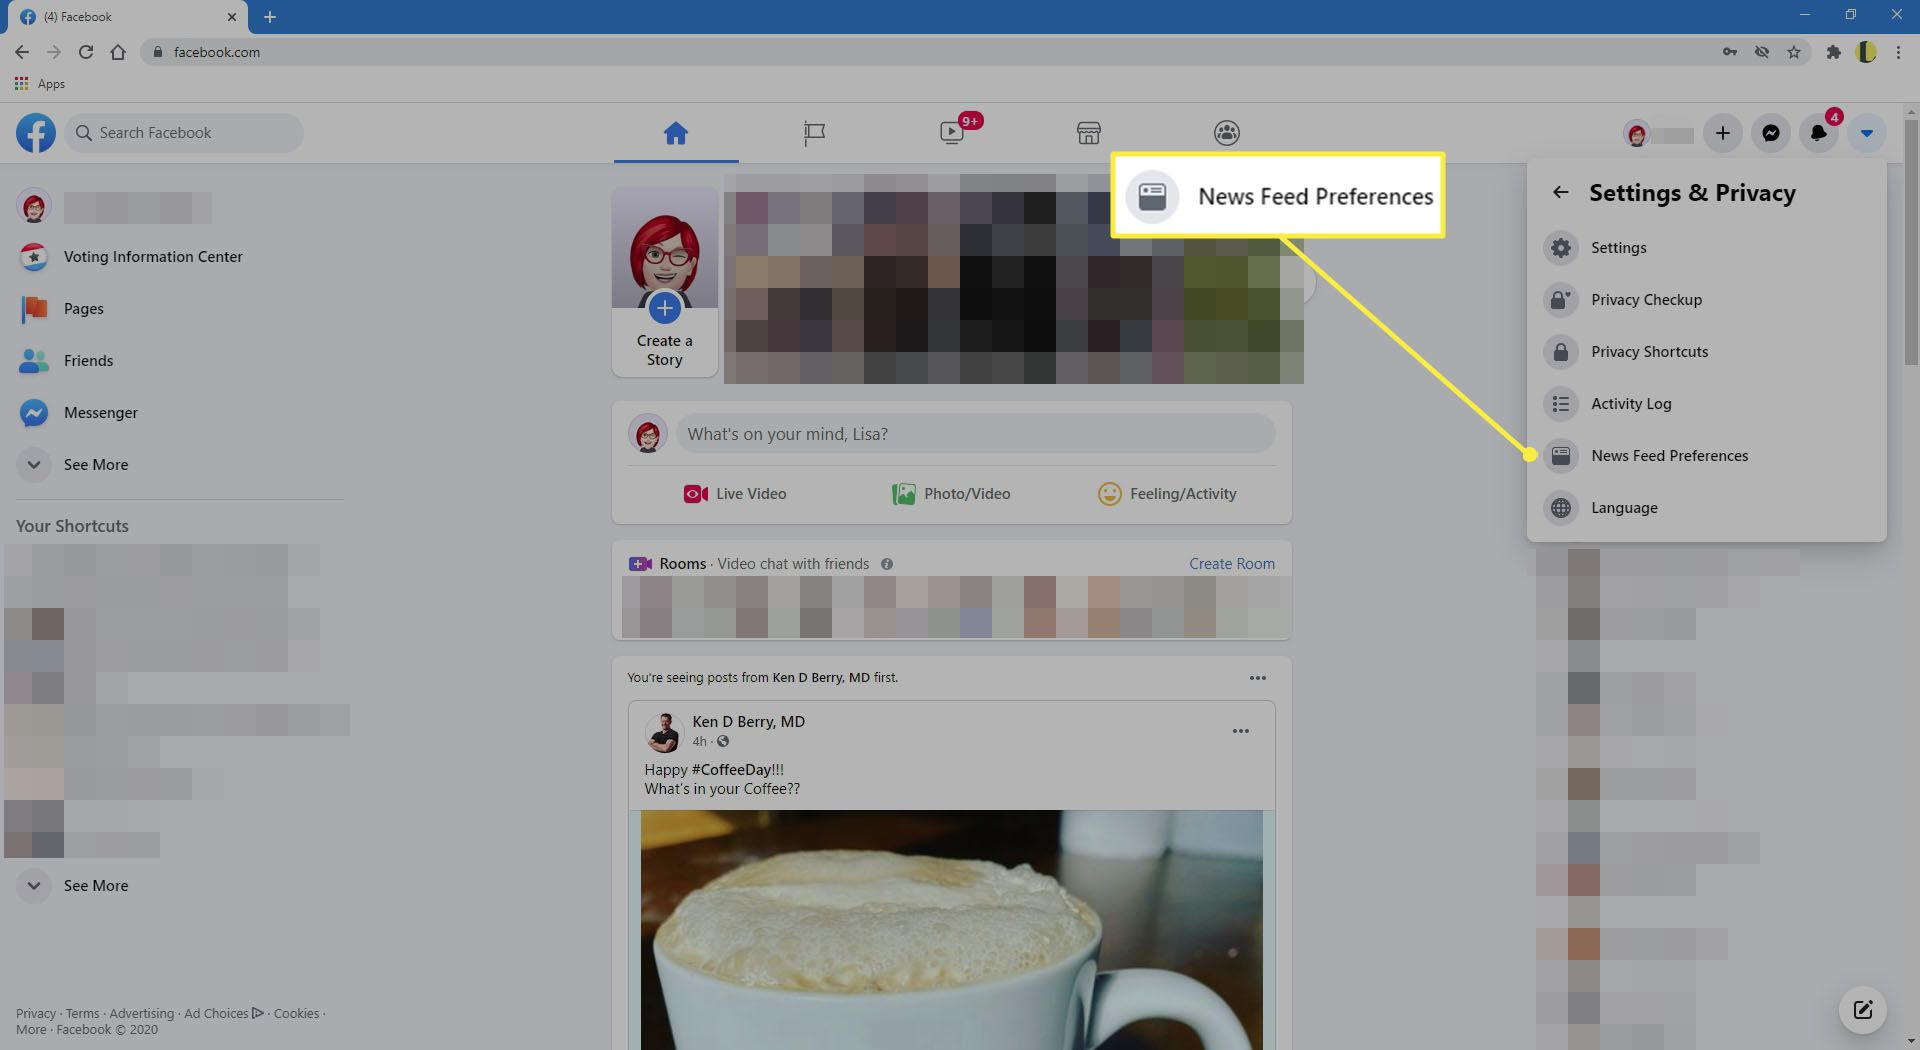 News Feed Preferences.